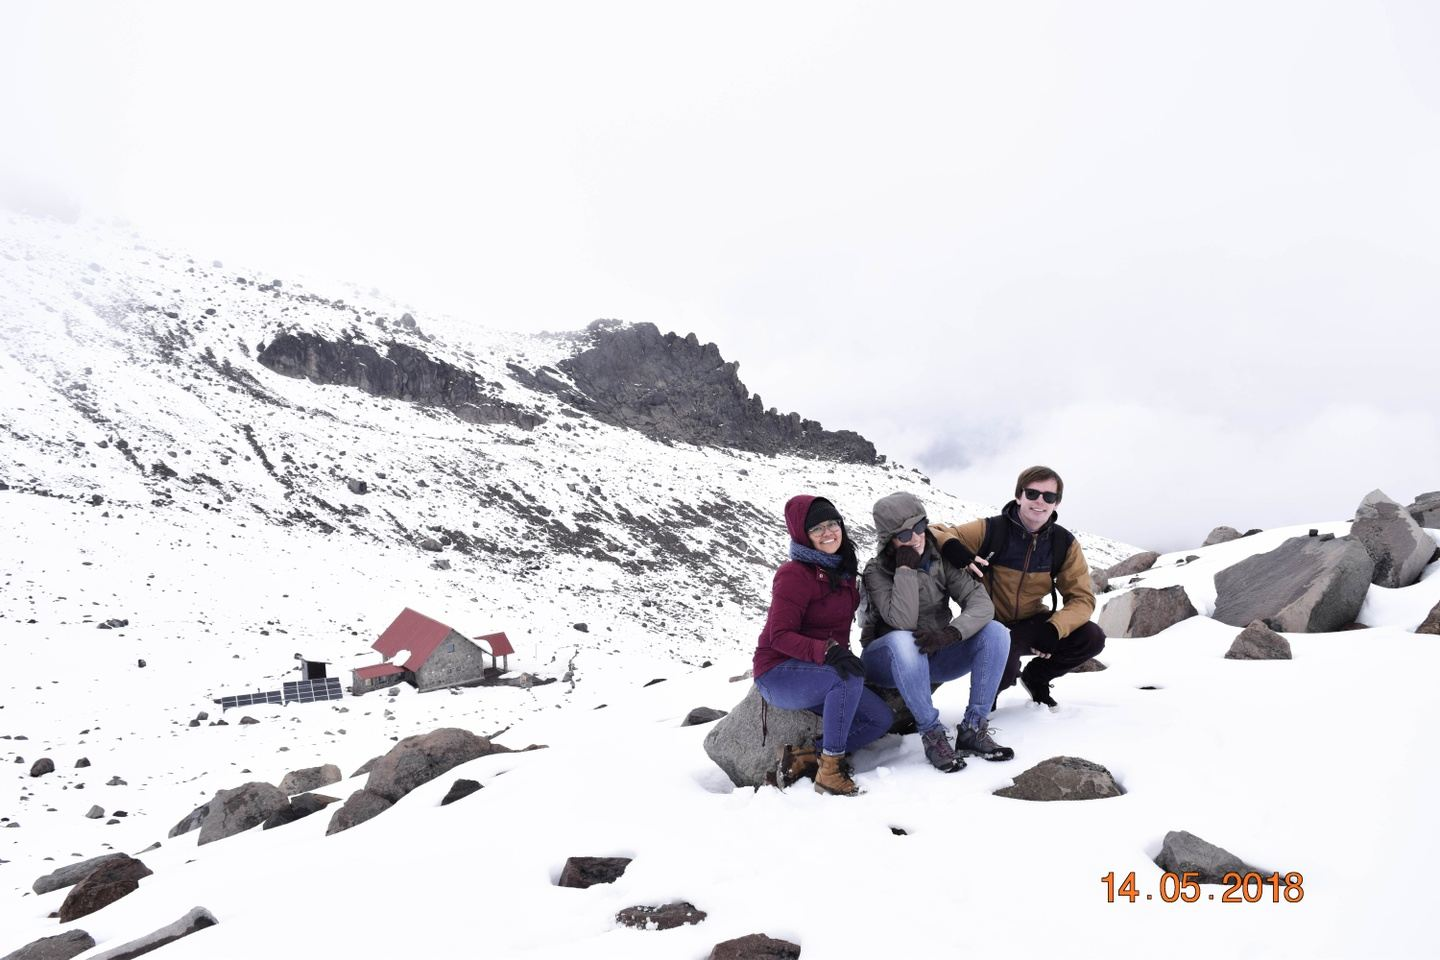 Full Day Chimborazo until 5100 msnm